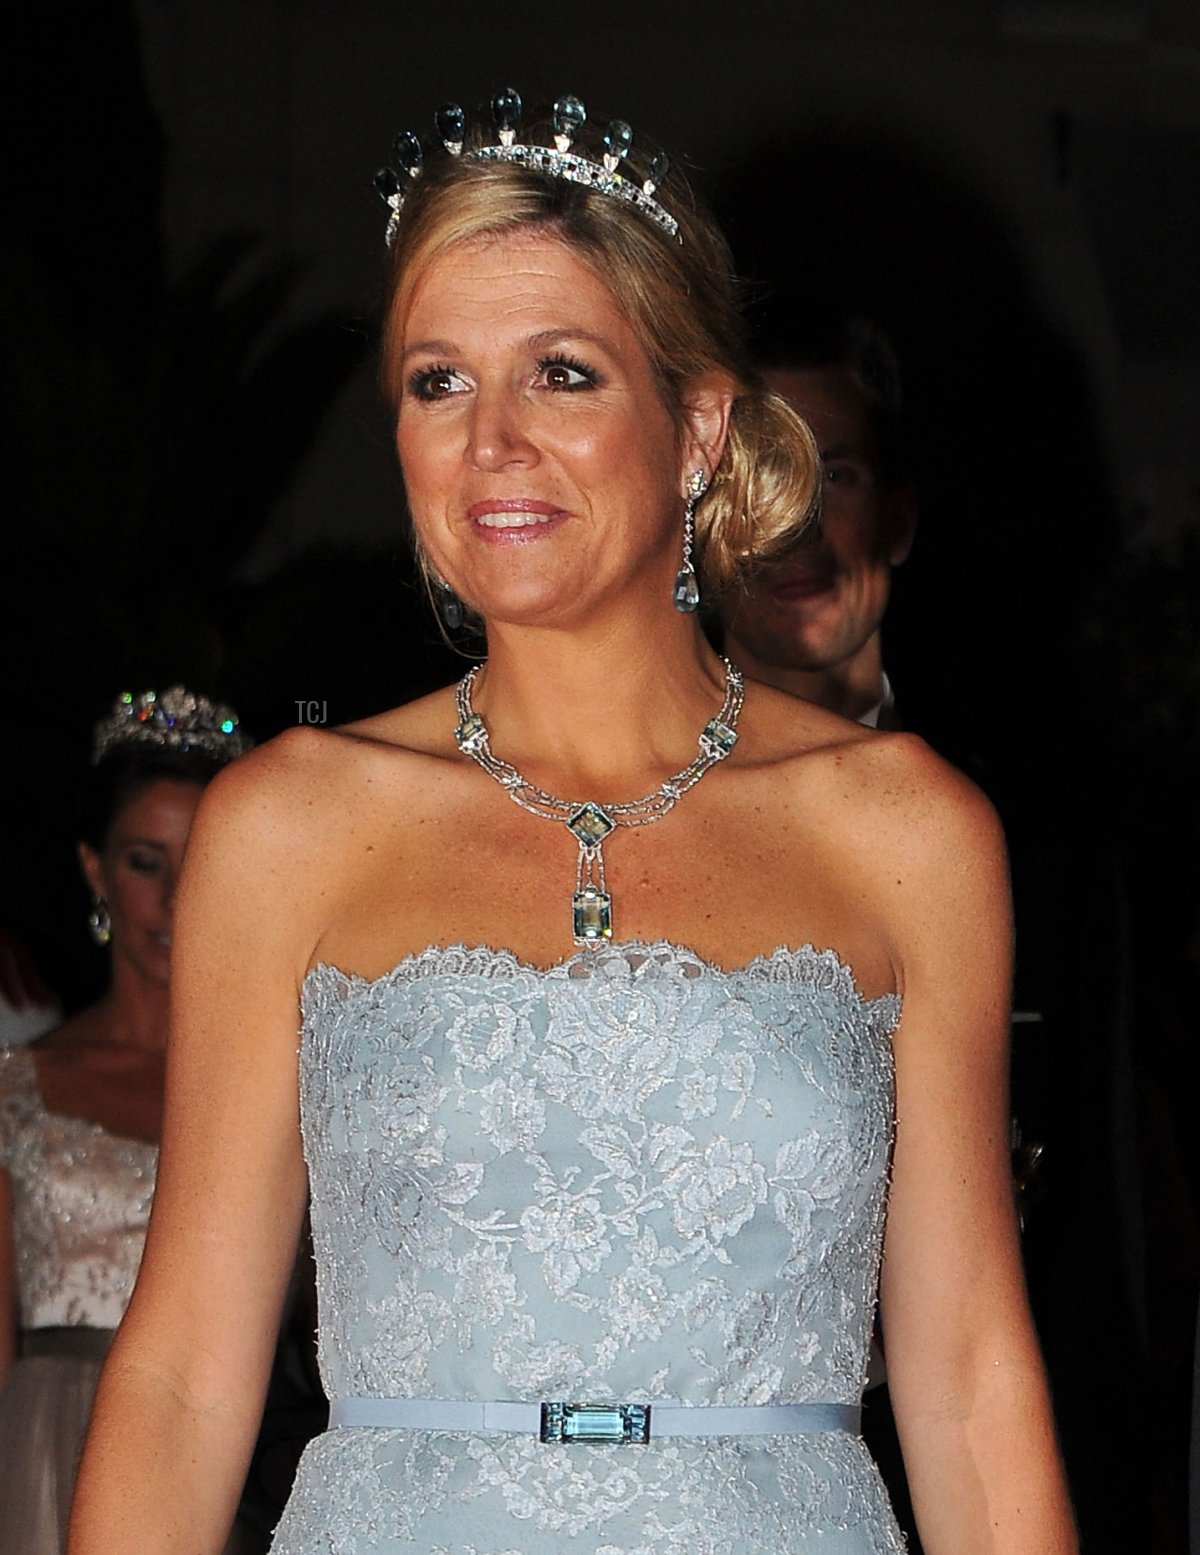 Princess Maxima of the Netherlands attends a dinner at Opera terraces after their religious wedding ceremony on July 2, 2011 in Monaco